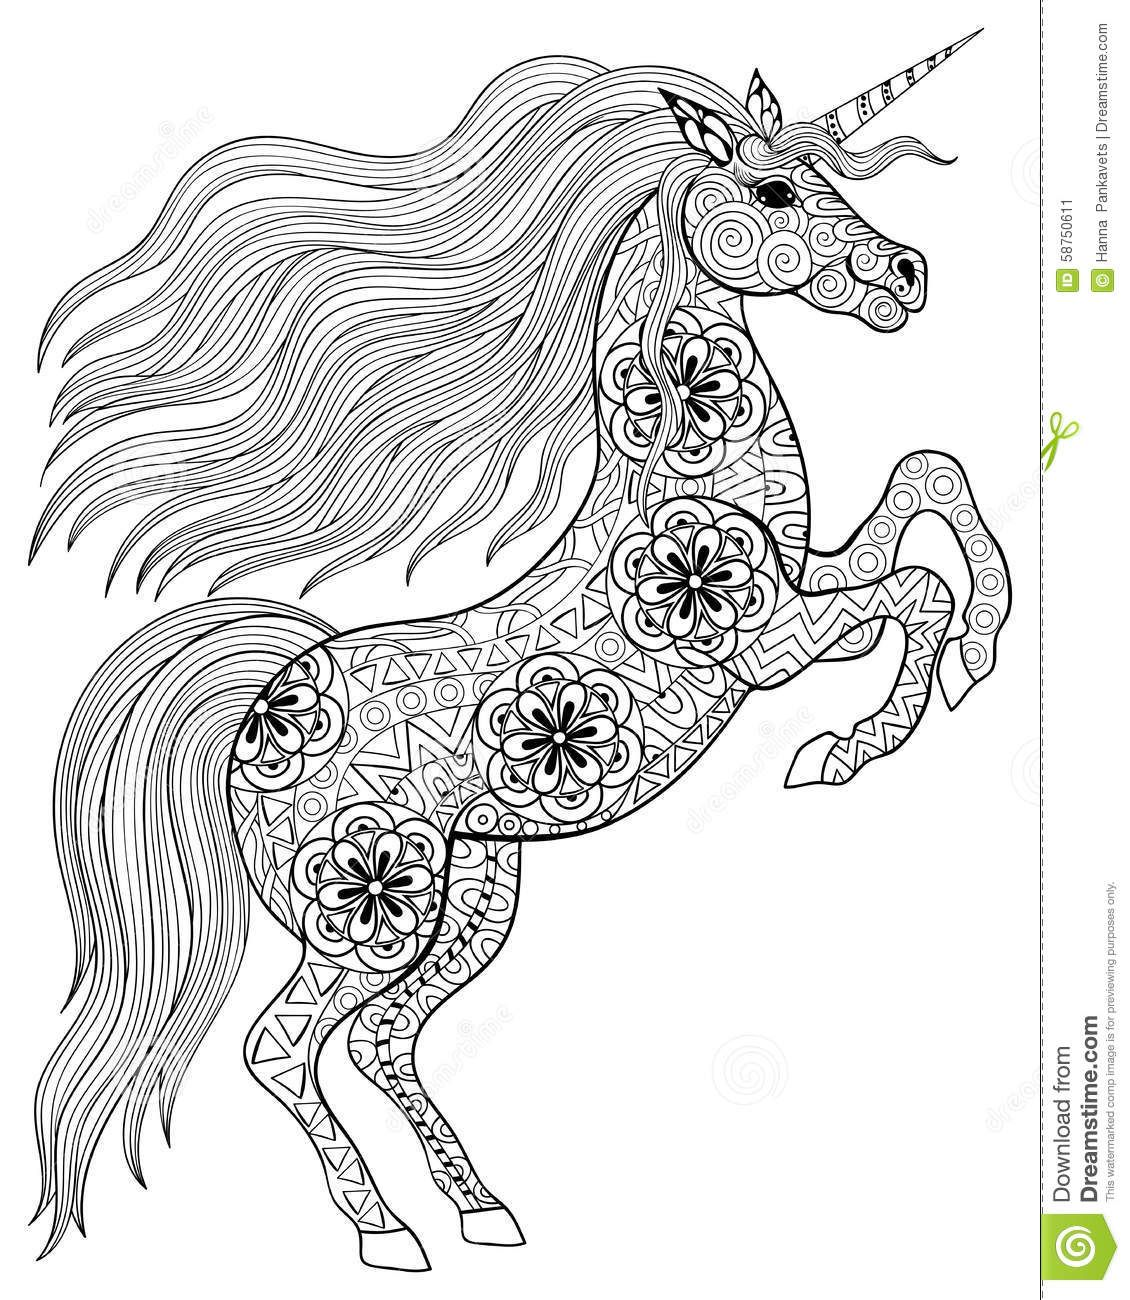 Magical unicorn coloring pages - Hand Drawn Magic Unicorn For Adult Anti Stress Coloring Page Wit Download From Over 37